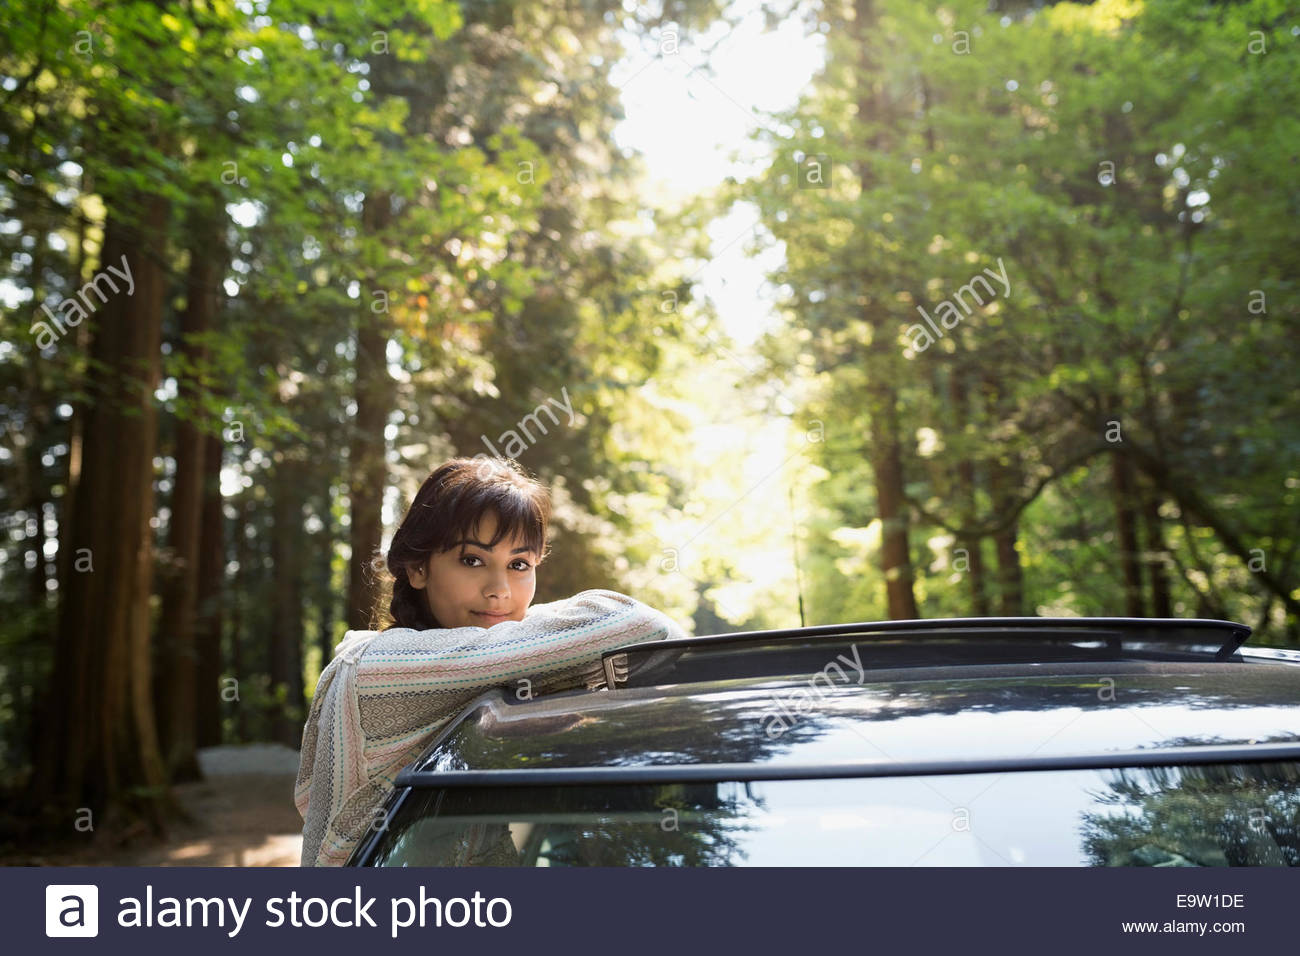 Portrait of woman leaning on car in woods Photo Stock